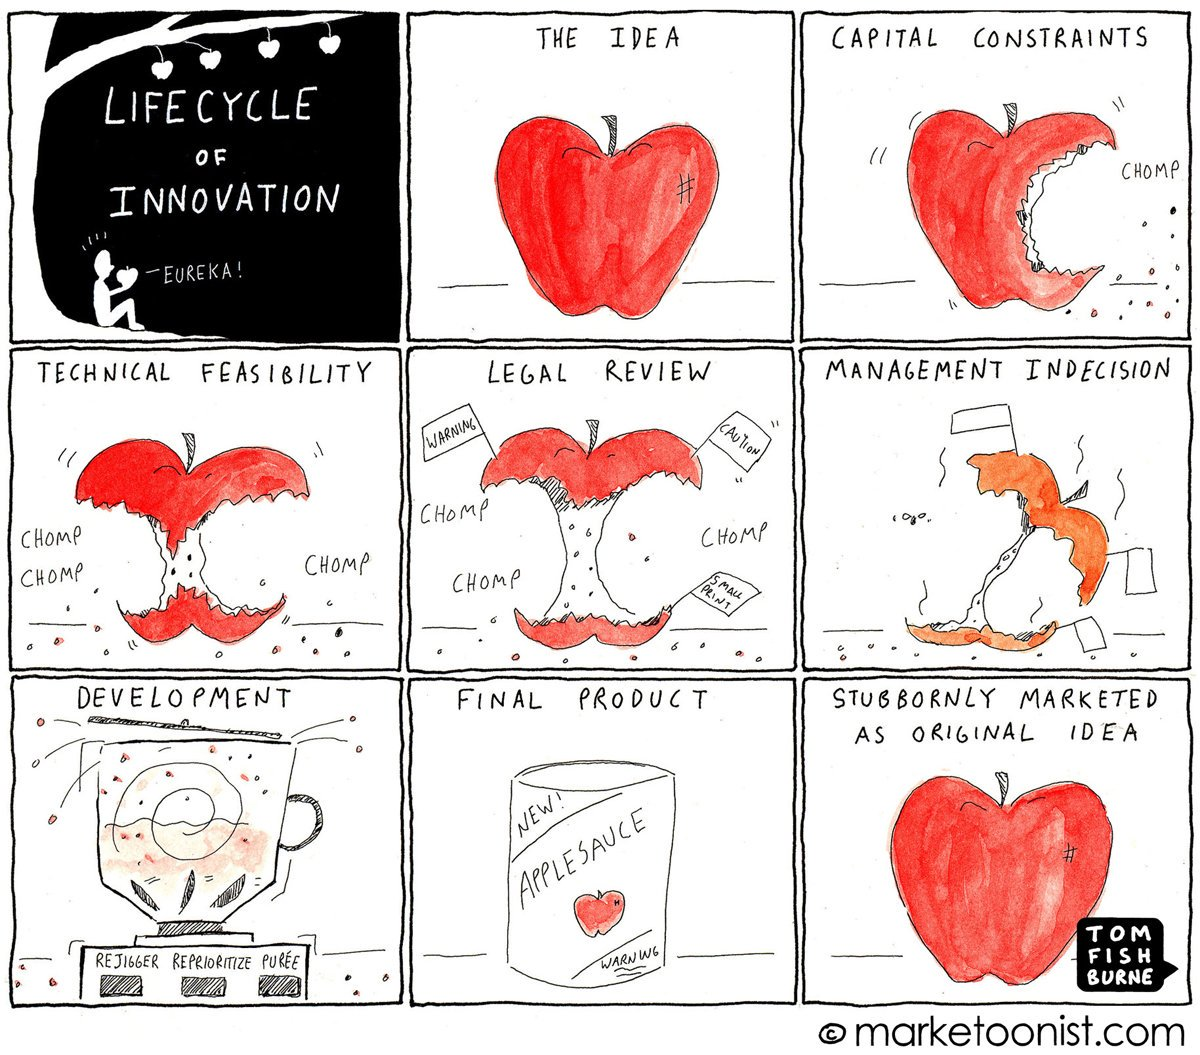 The lifecycle of #innovation may get caught in the gap between strategy and execution. #leadership #CEO #CIO #designthink<br>http://pic.twitter.com/yCyIZkAQ2V